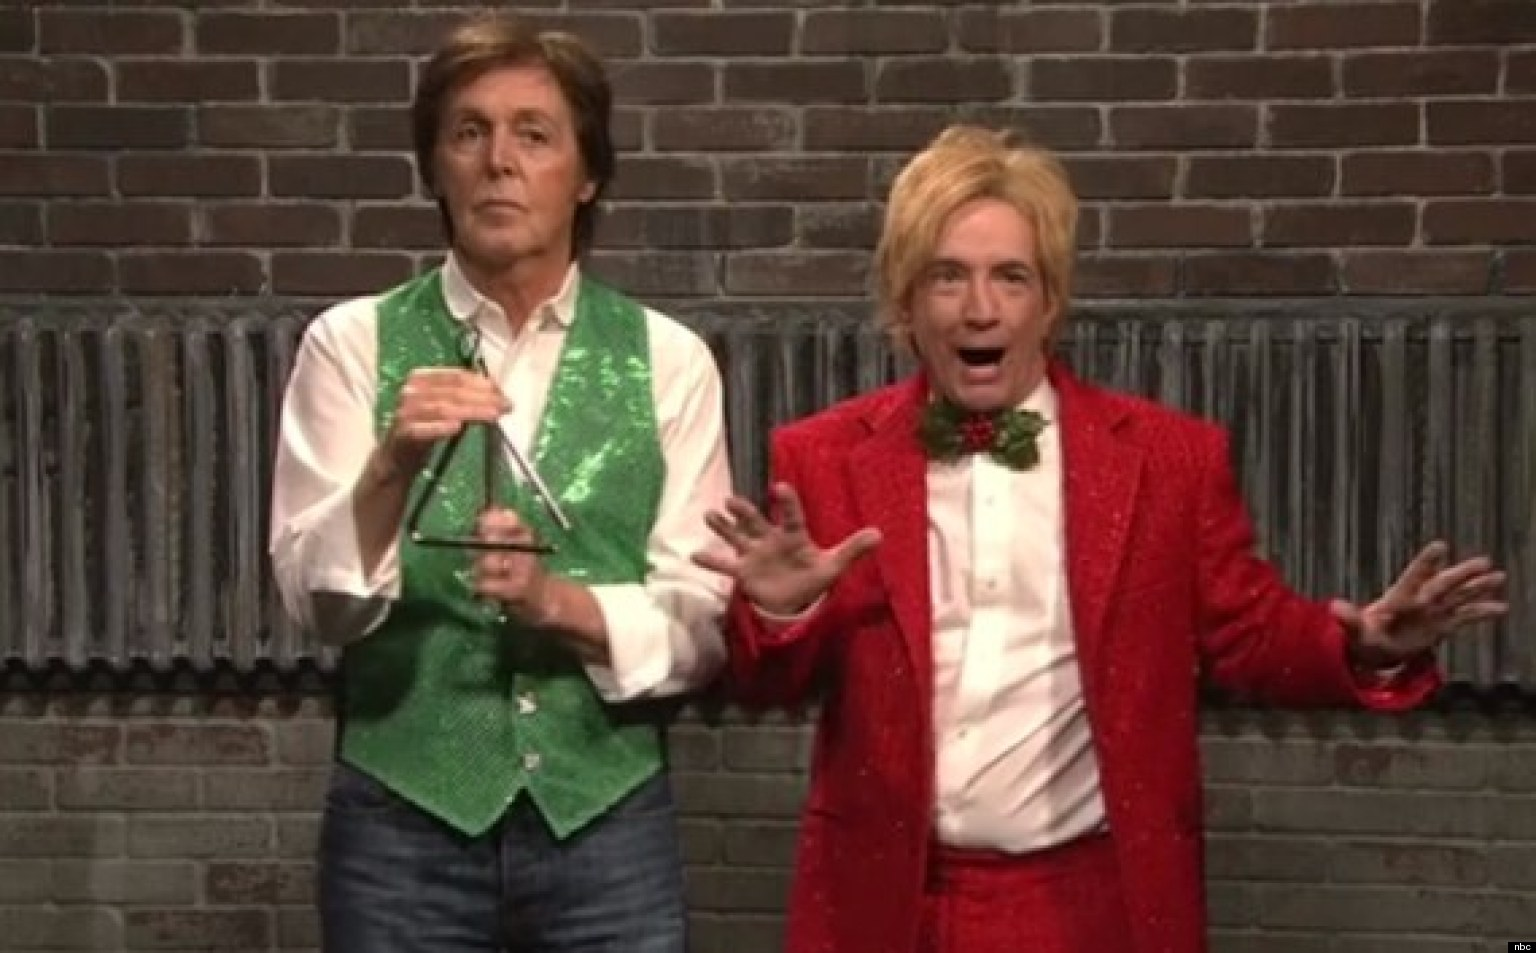 SNL Childen's Choir Opening - The Hollywood Gossip